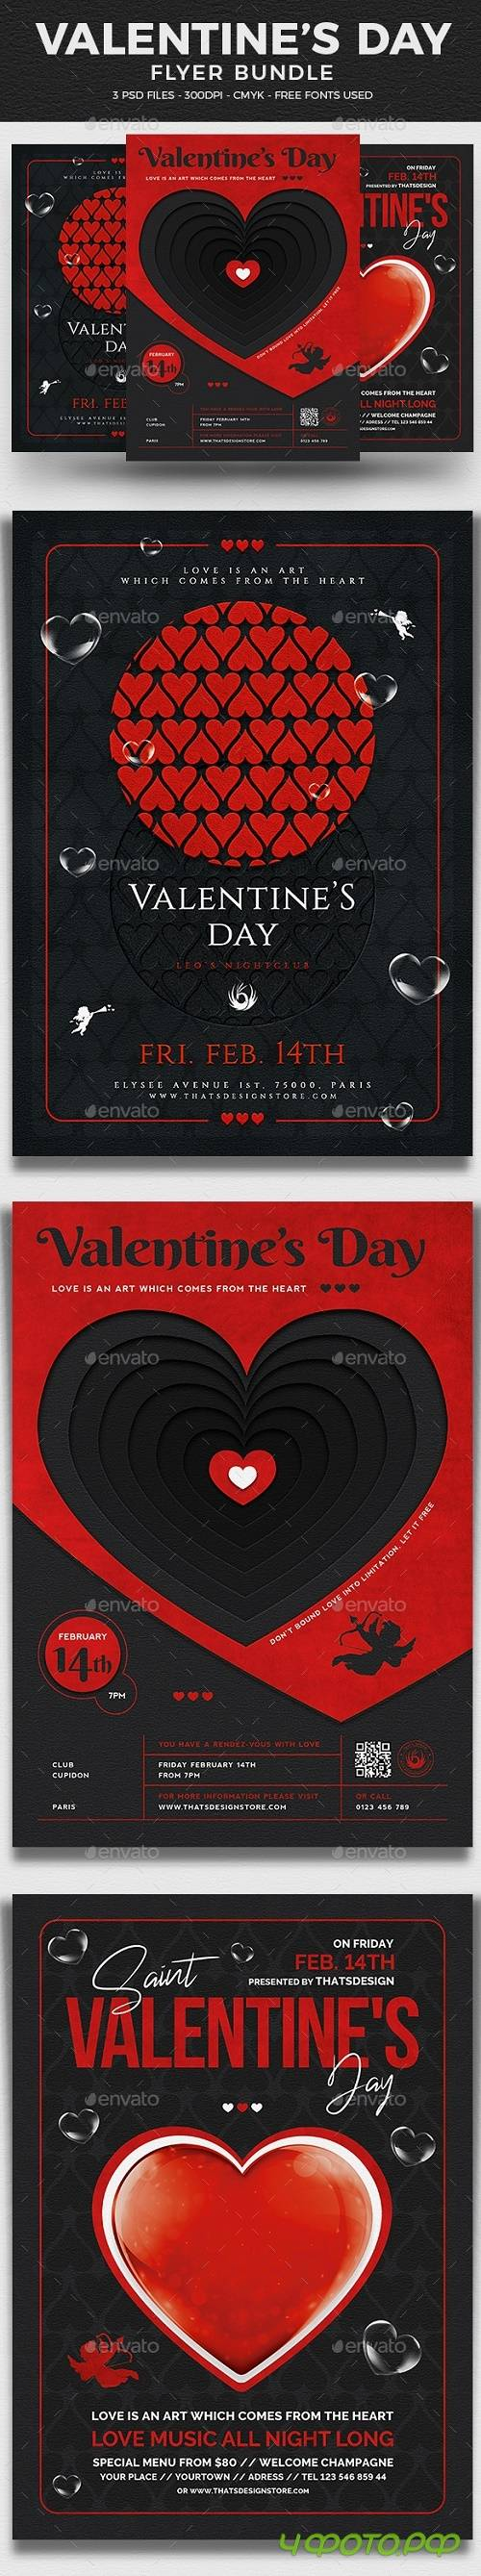 Valentines Day Flyer Bundle V4 - 25434277 - 4449571